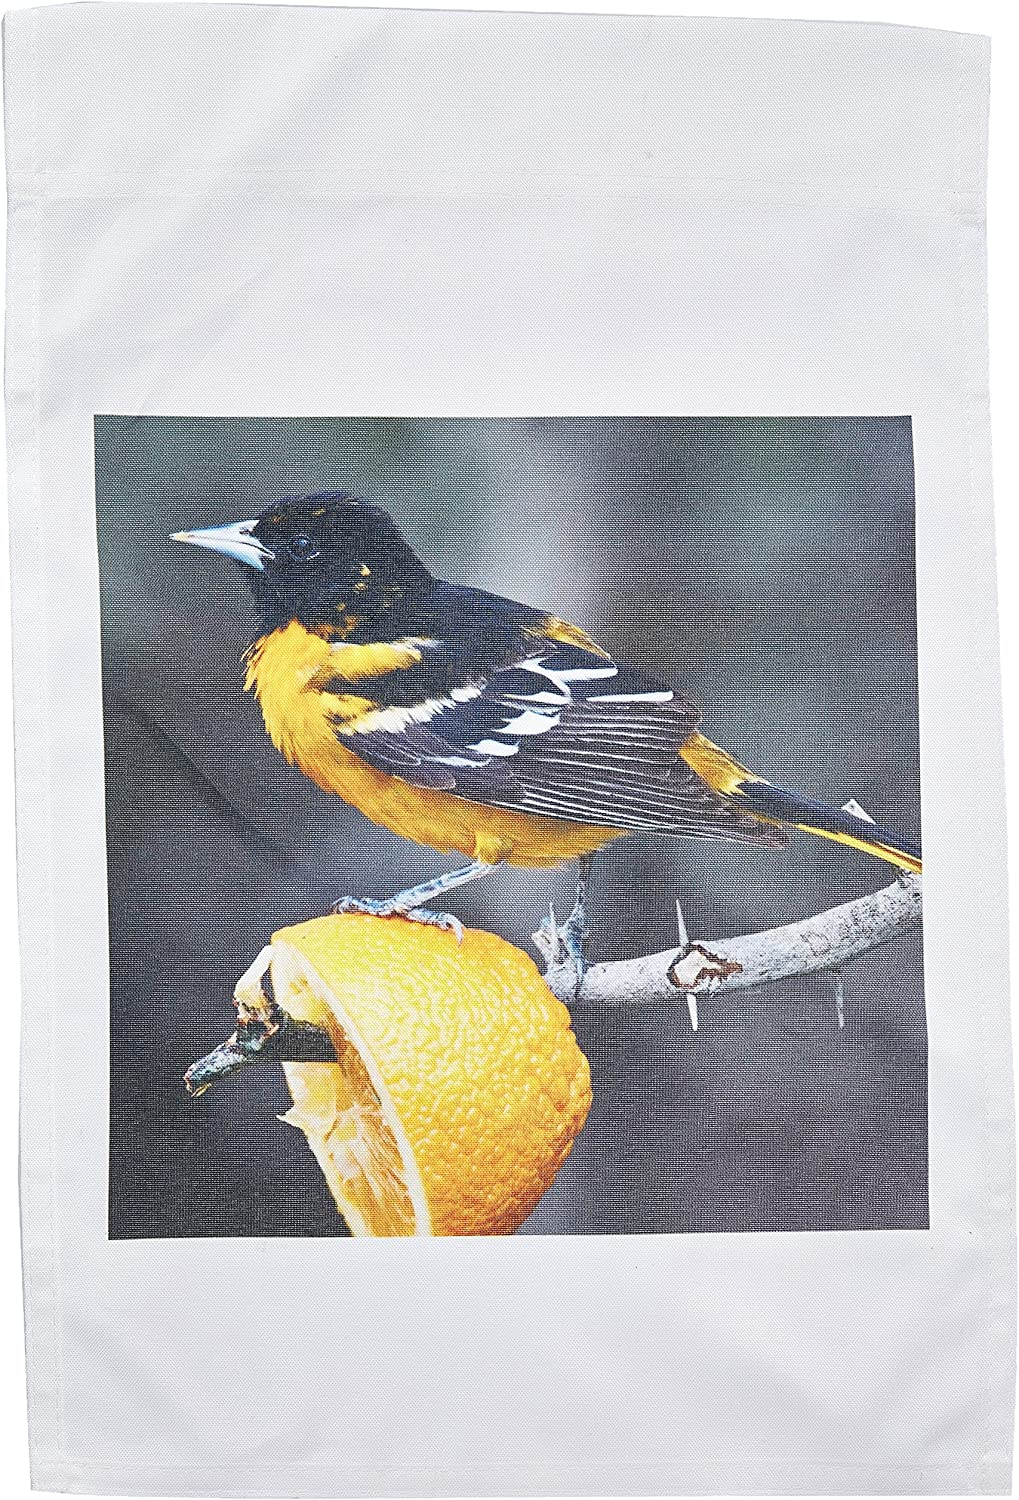 3dRose fl_94471_1 South Padre Island Texas Baltimore Oriole Bird US44 Ldi0230 Larry Ditto Garden Flag, 12 by 18-Inch